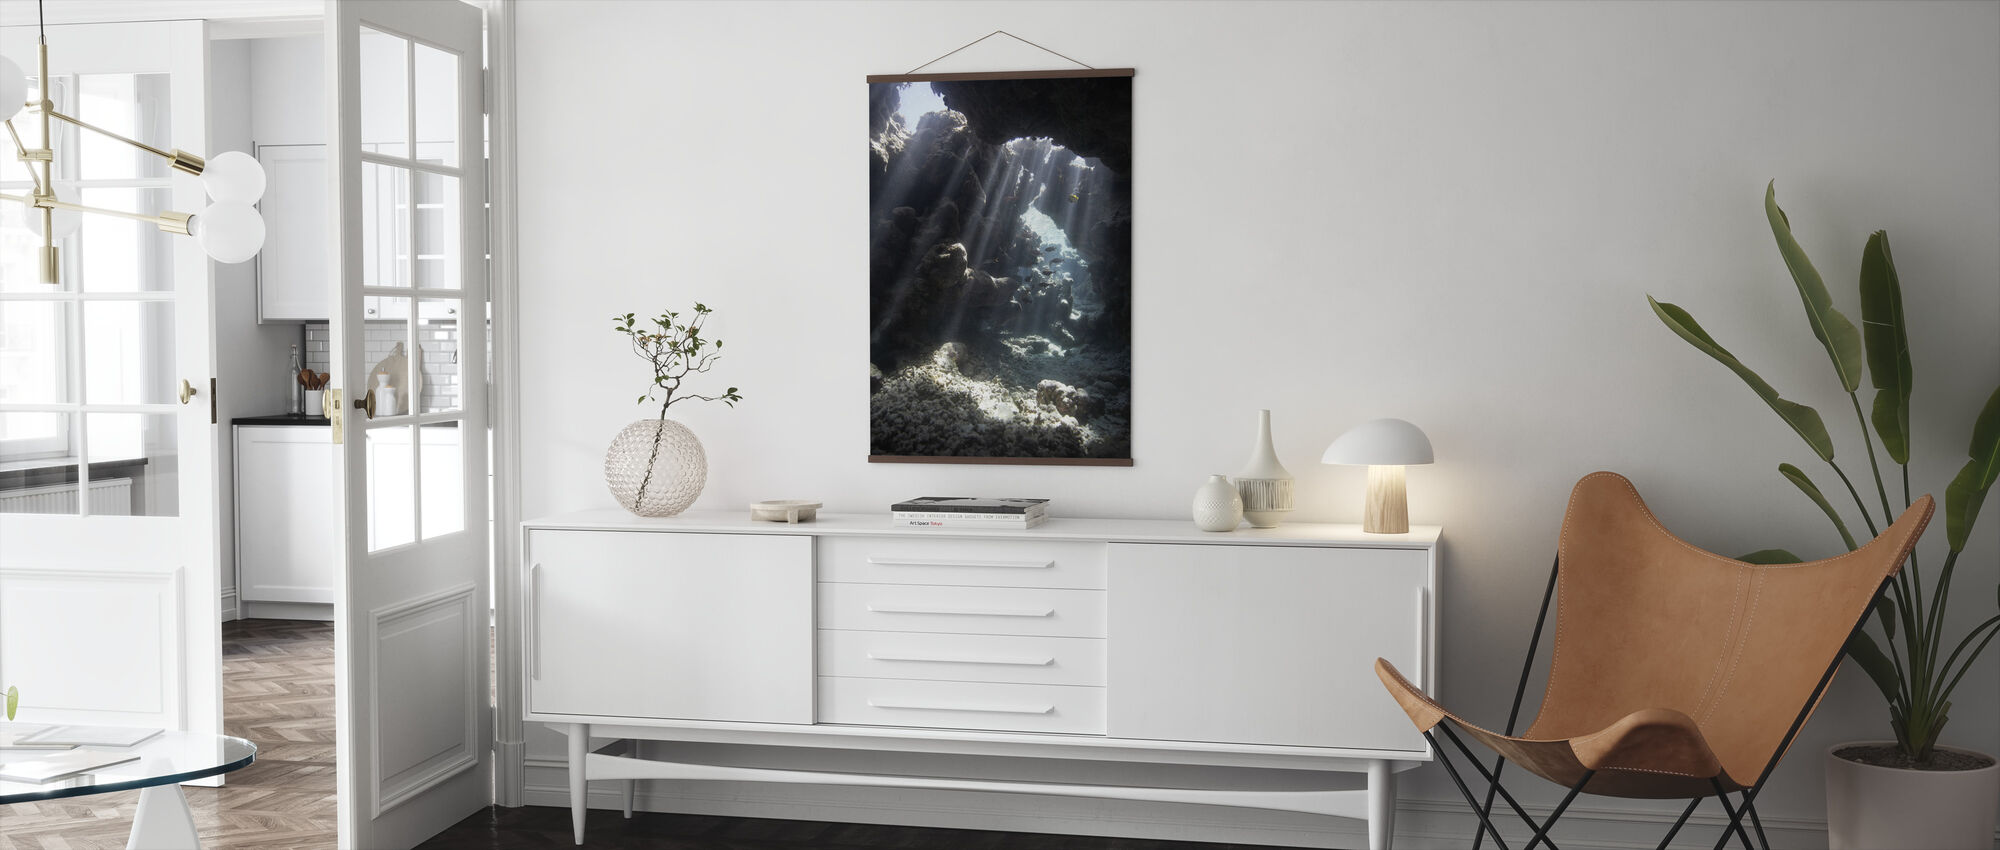 Sunbeams through Water - Poster - Living Room